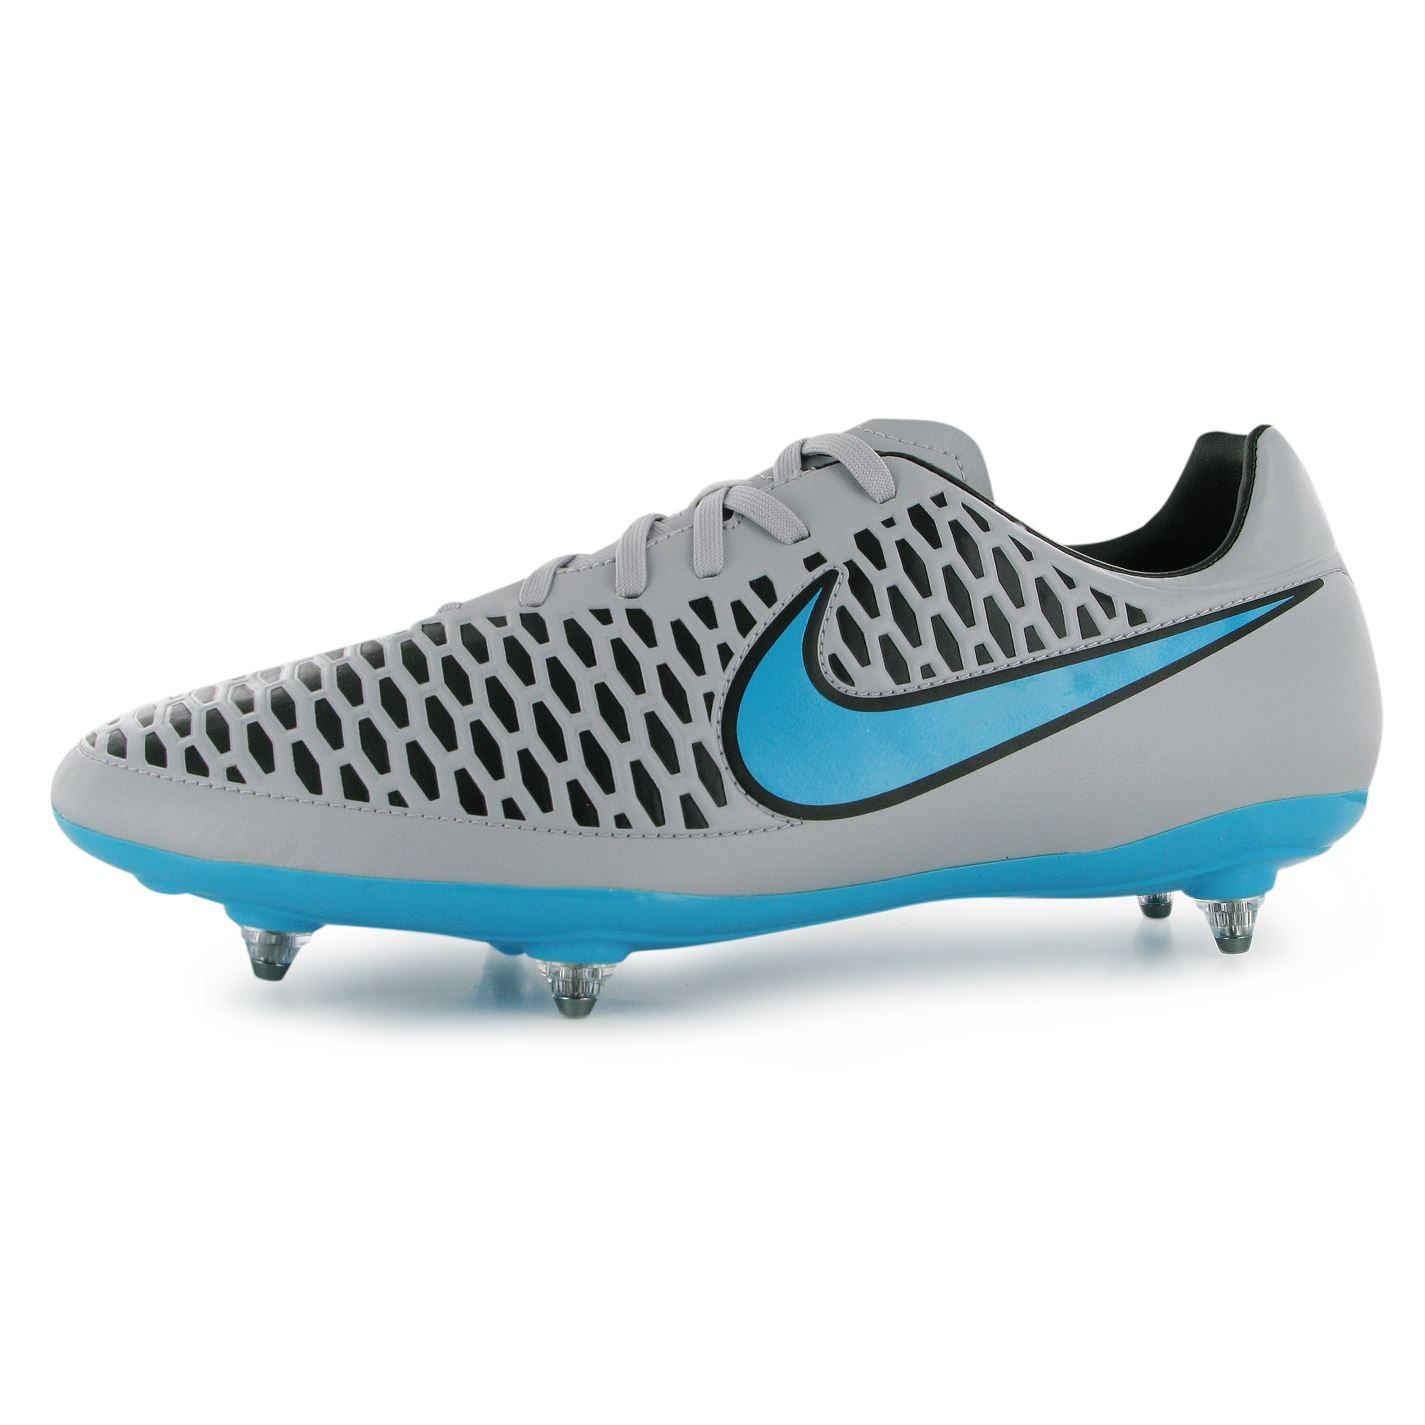 magista football boots grey and blue metal studs - Google Search · Mens  Football BootsSoccer ...